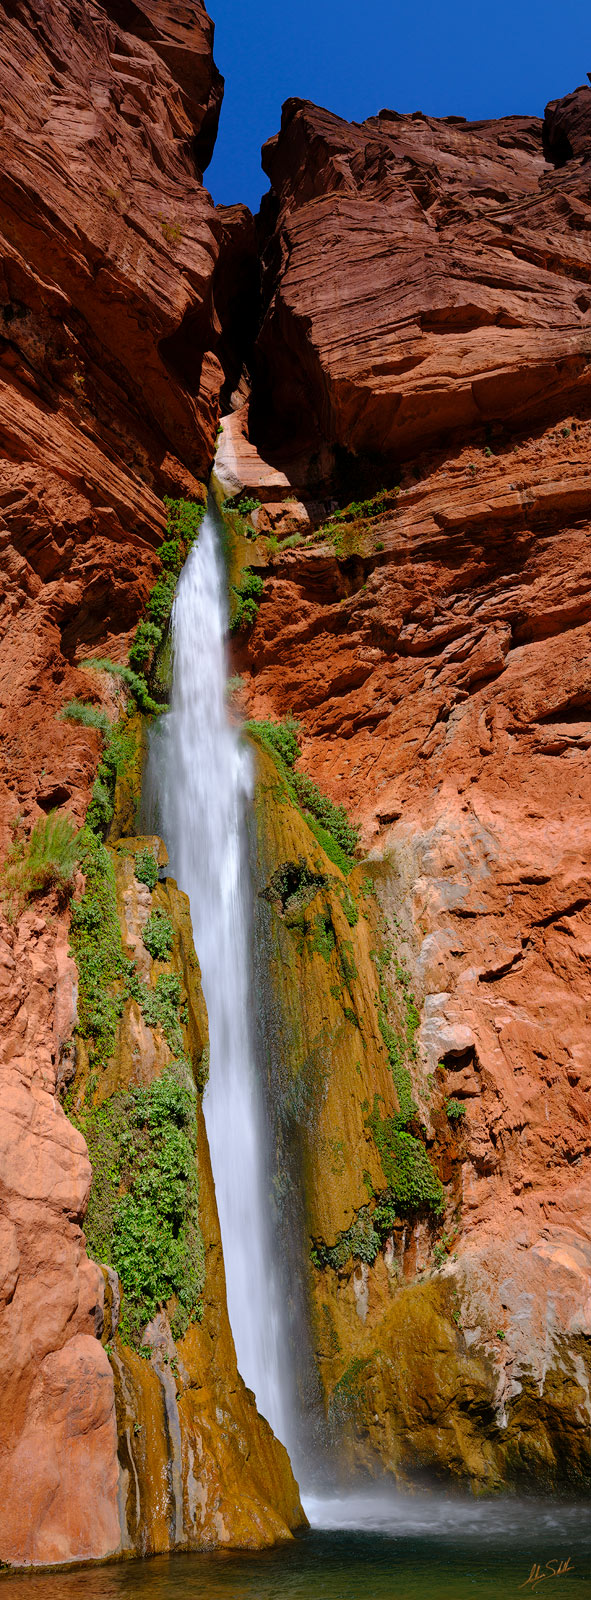 AZ, Arizona, Below the Rim, Deer Creek, Deer Creek Falls, Expedition, FujiFilm, GFX, GFX 100, Grand Canyon, National Park, Pano, Panorama, Panoramic, River Trip, Waterfall, photo